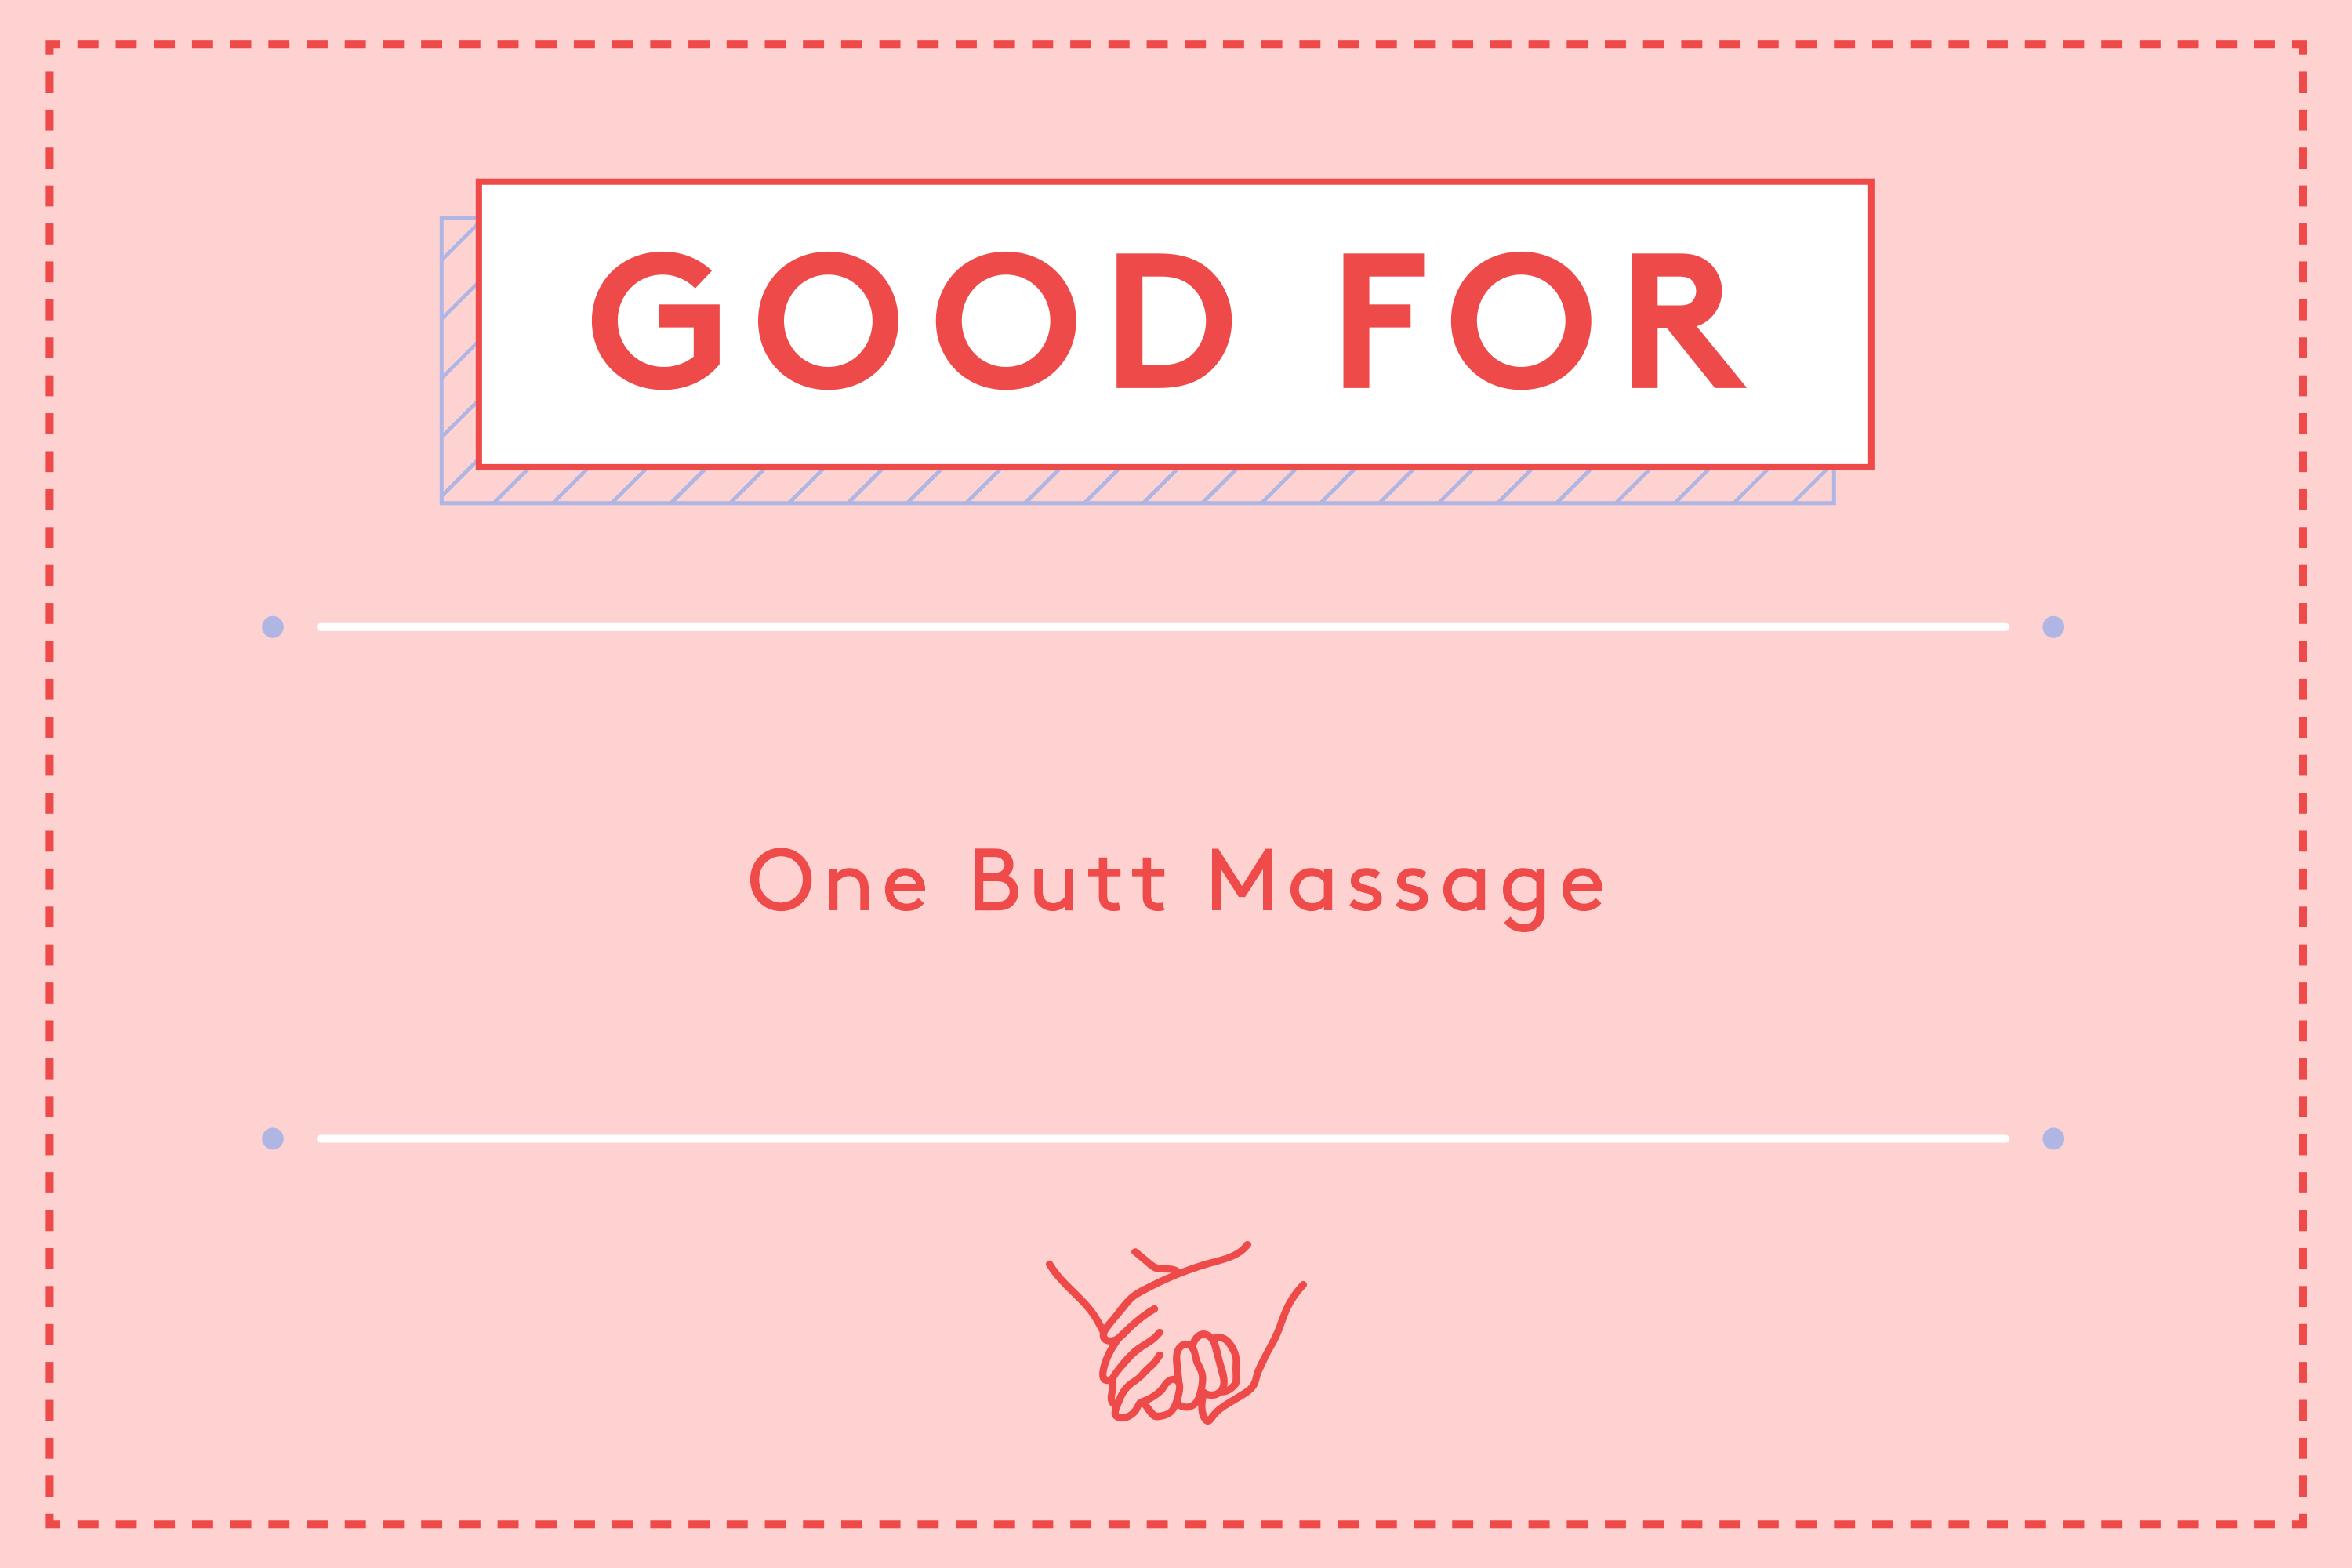 Sex And Love Coupons For Him, Her – DIY Christmas Gifts